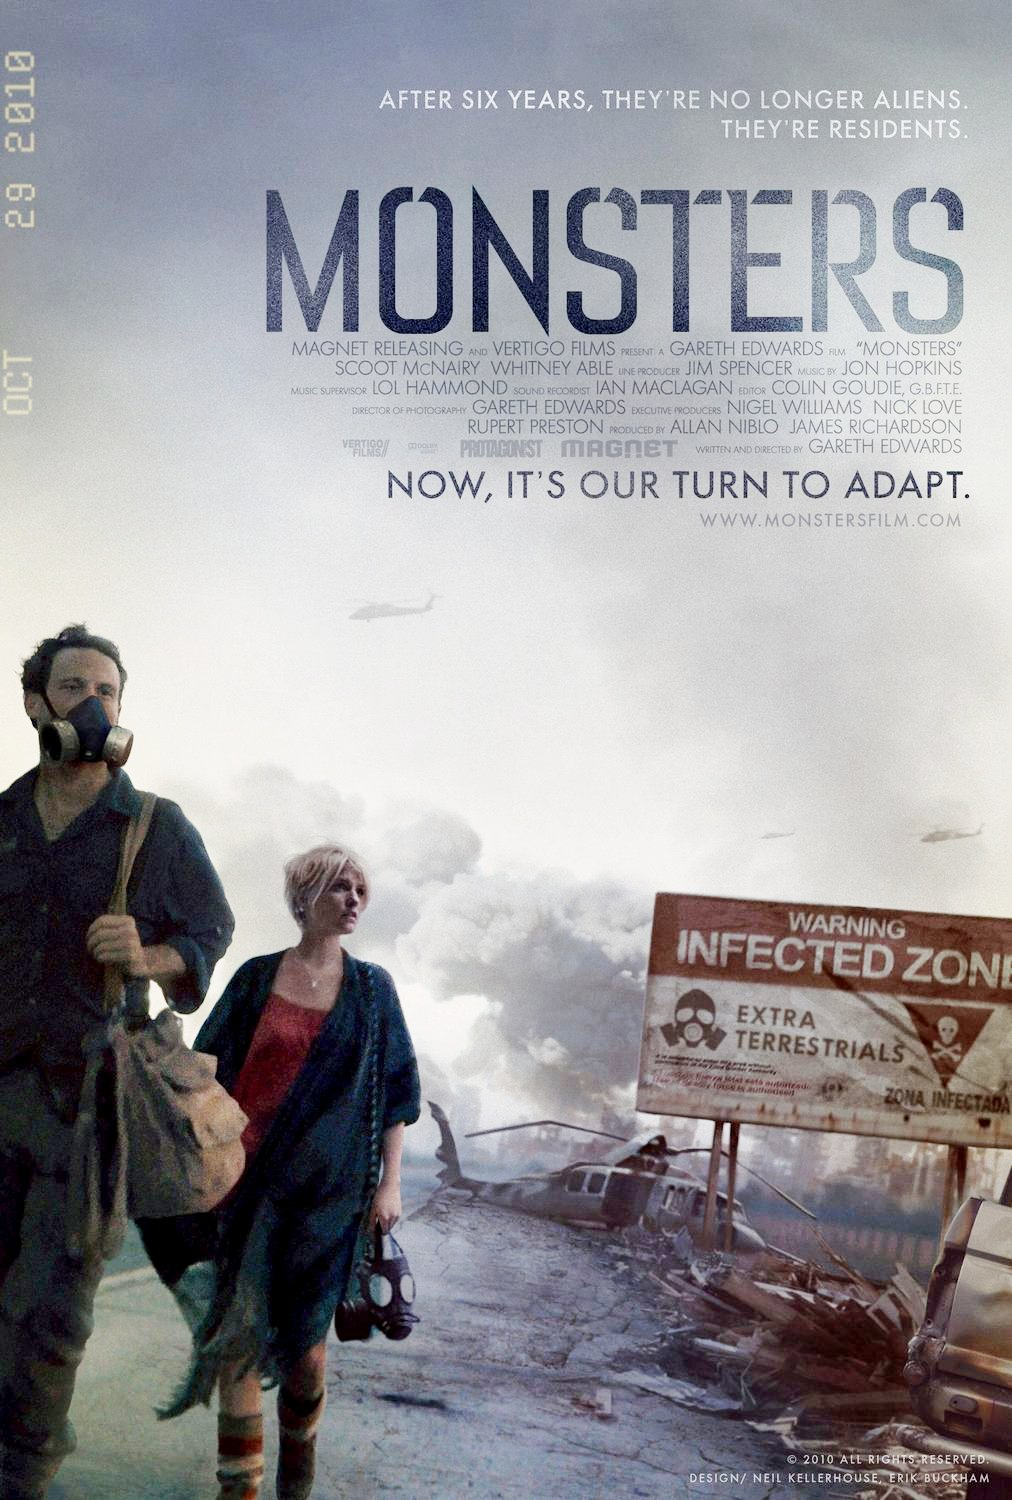 New 'Monsters' Teaser Trailer Shares the Fear